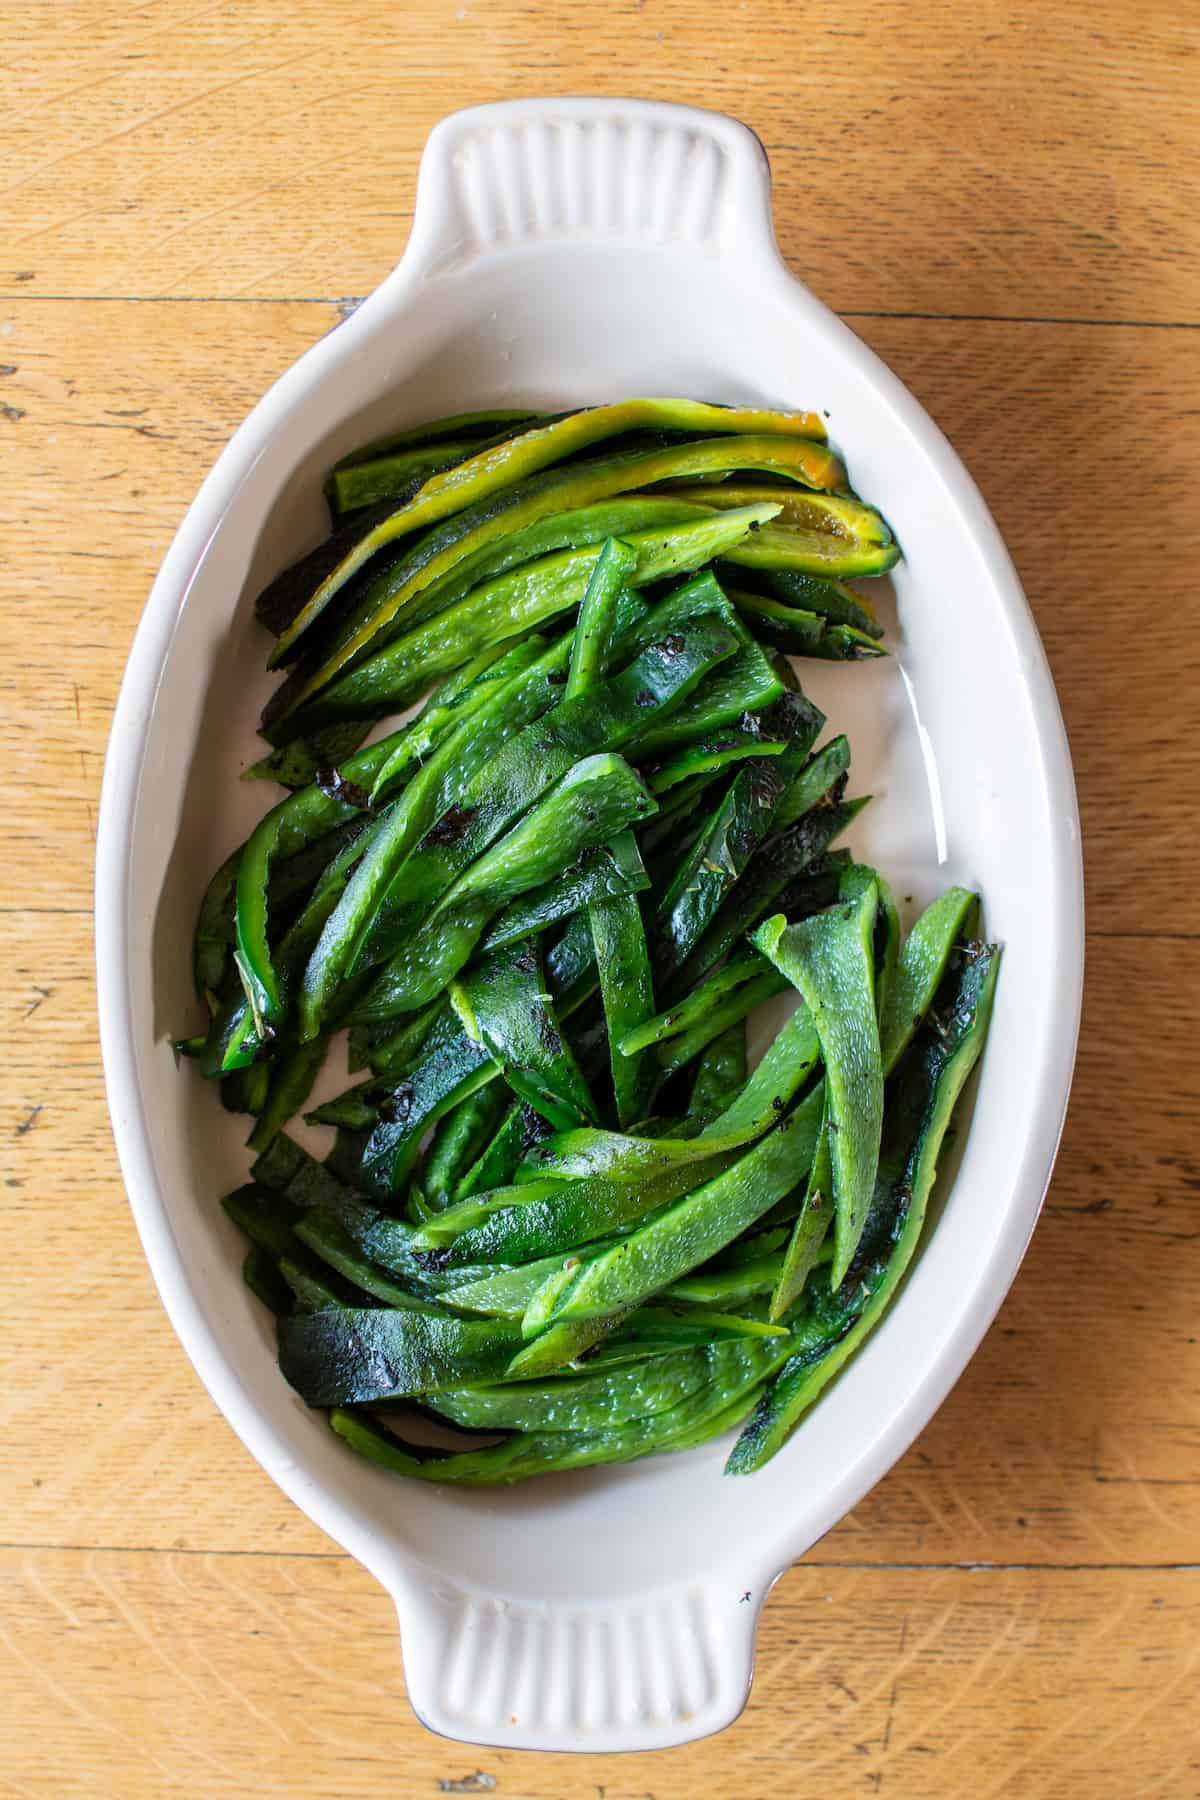 A dish of roasted poblano peppers cut into strips sitting on a wood table.